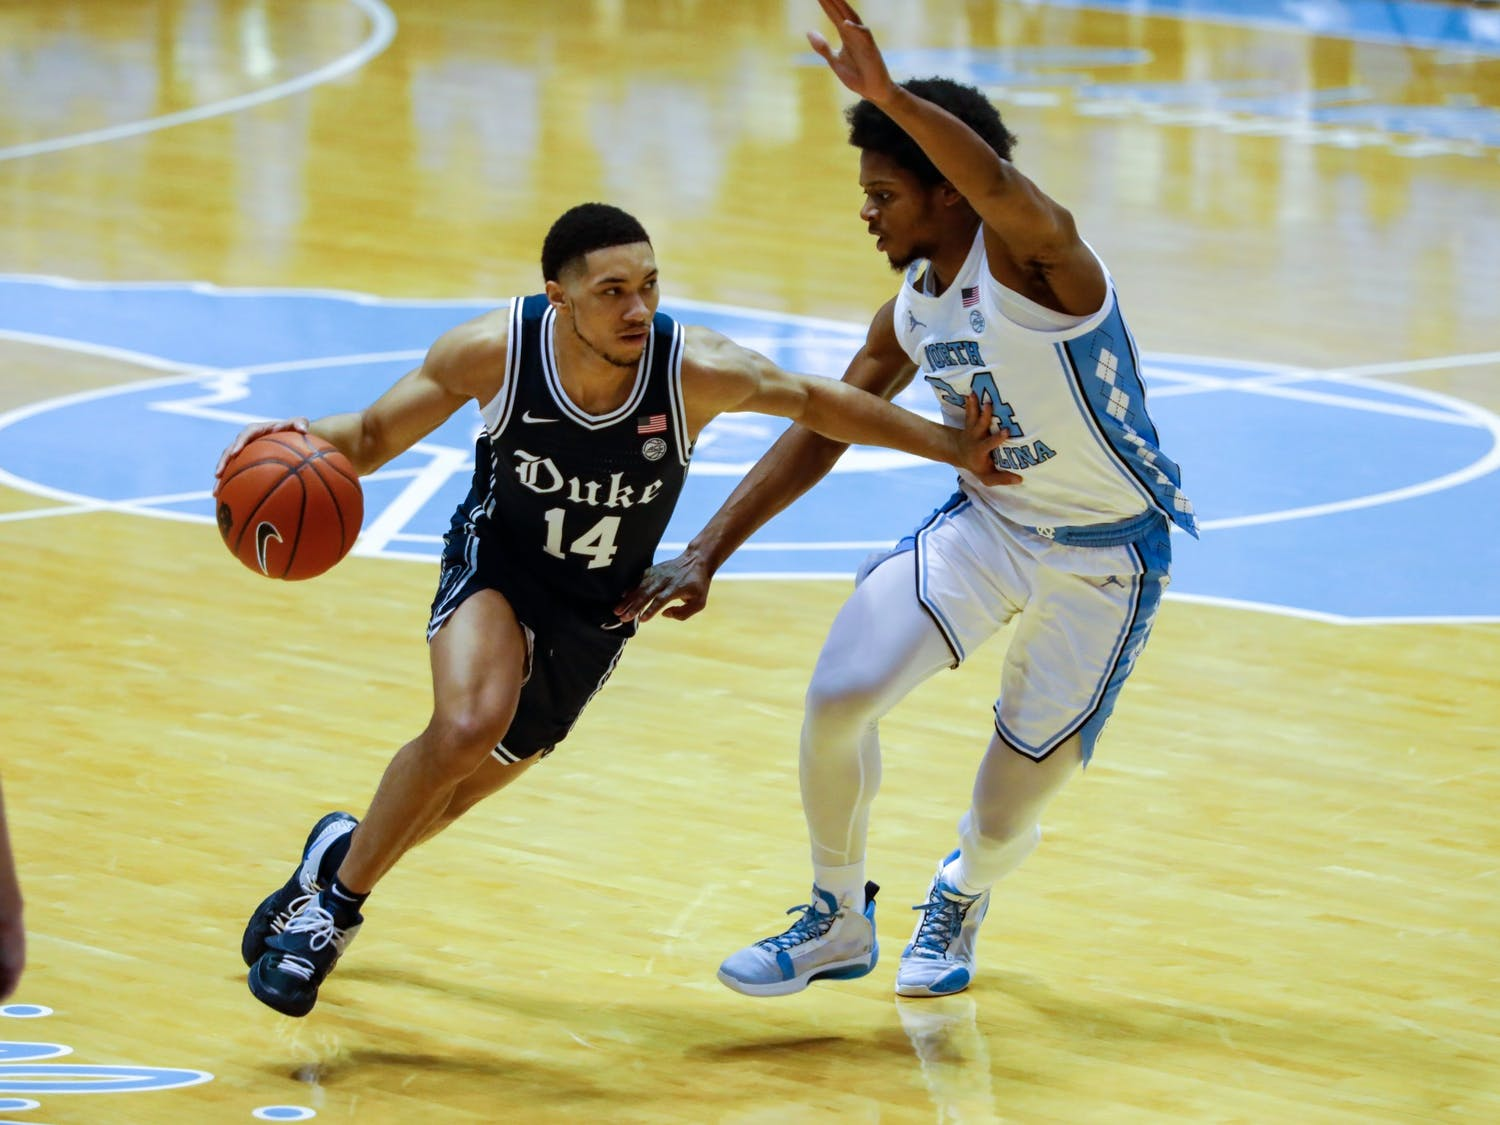 Duke senior guard Jordan Goldwire (14) dribbles past UNC first year guard Kerwin Walton (24) during a game against Duke in the Smith Center on Saturday, March 6, 2021.